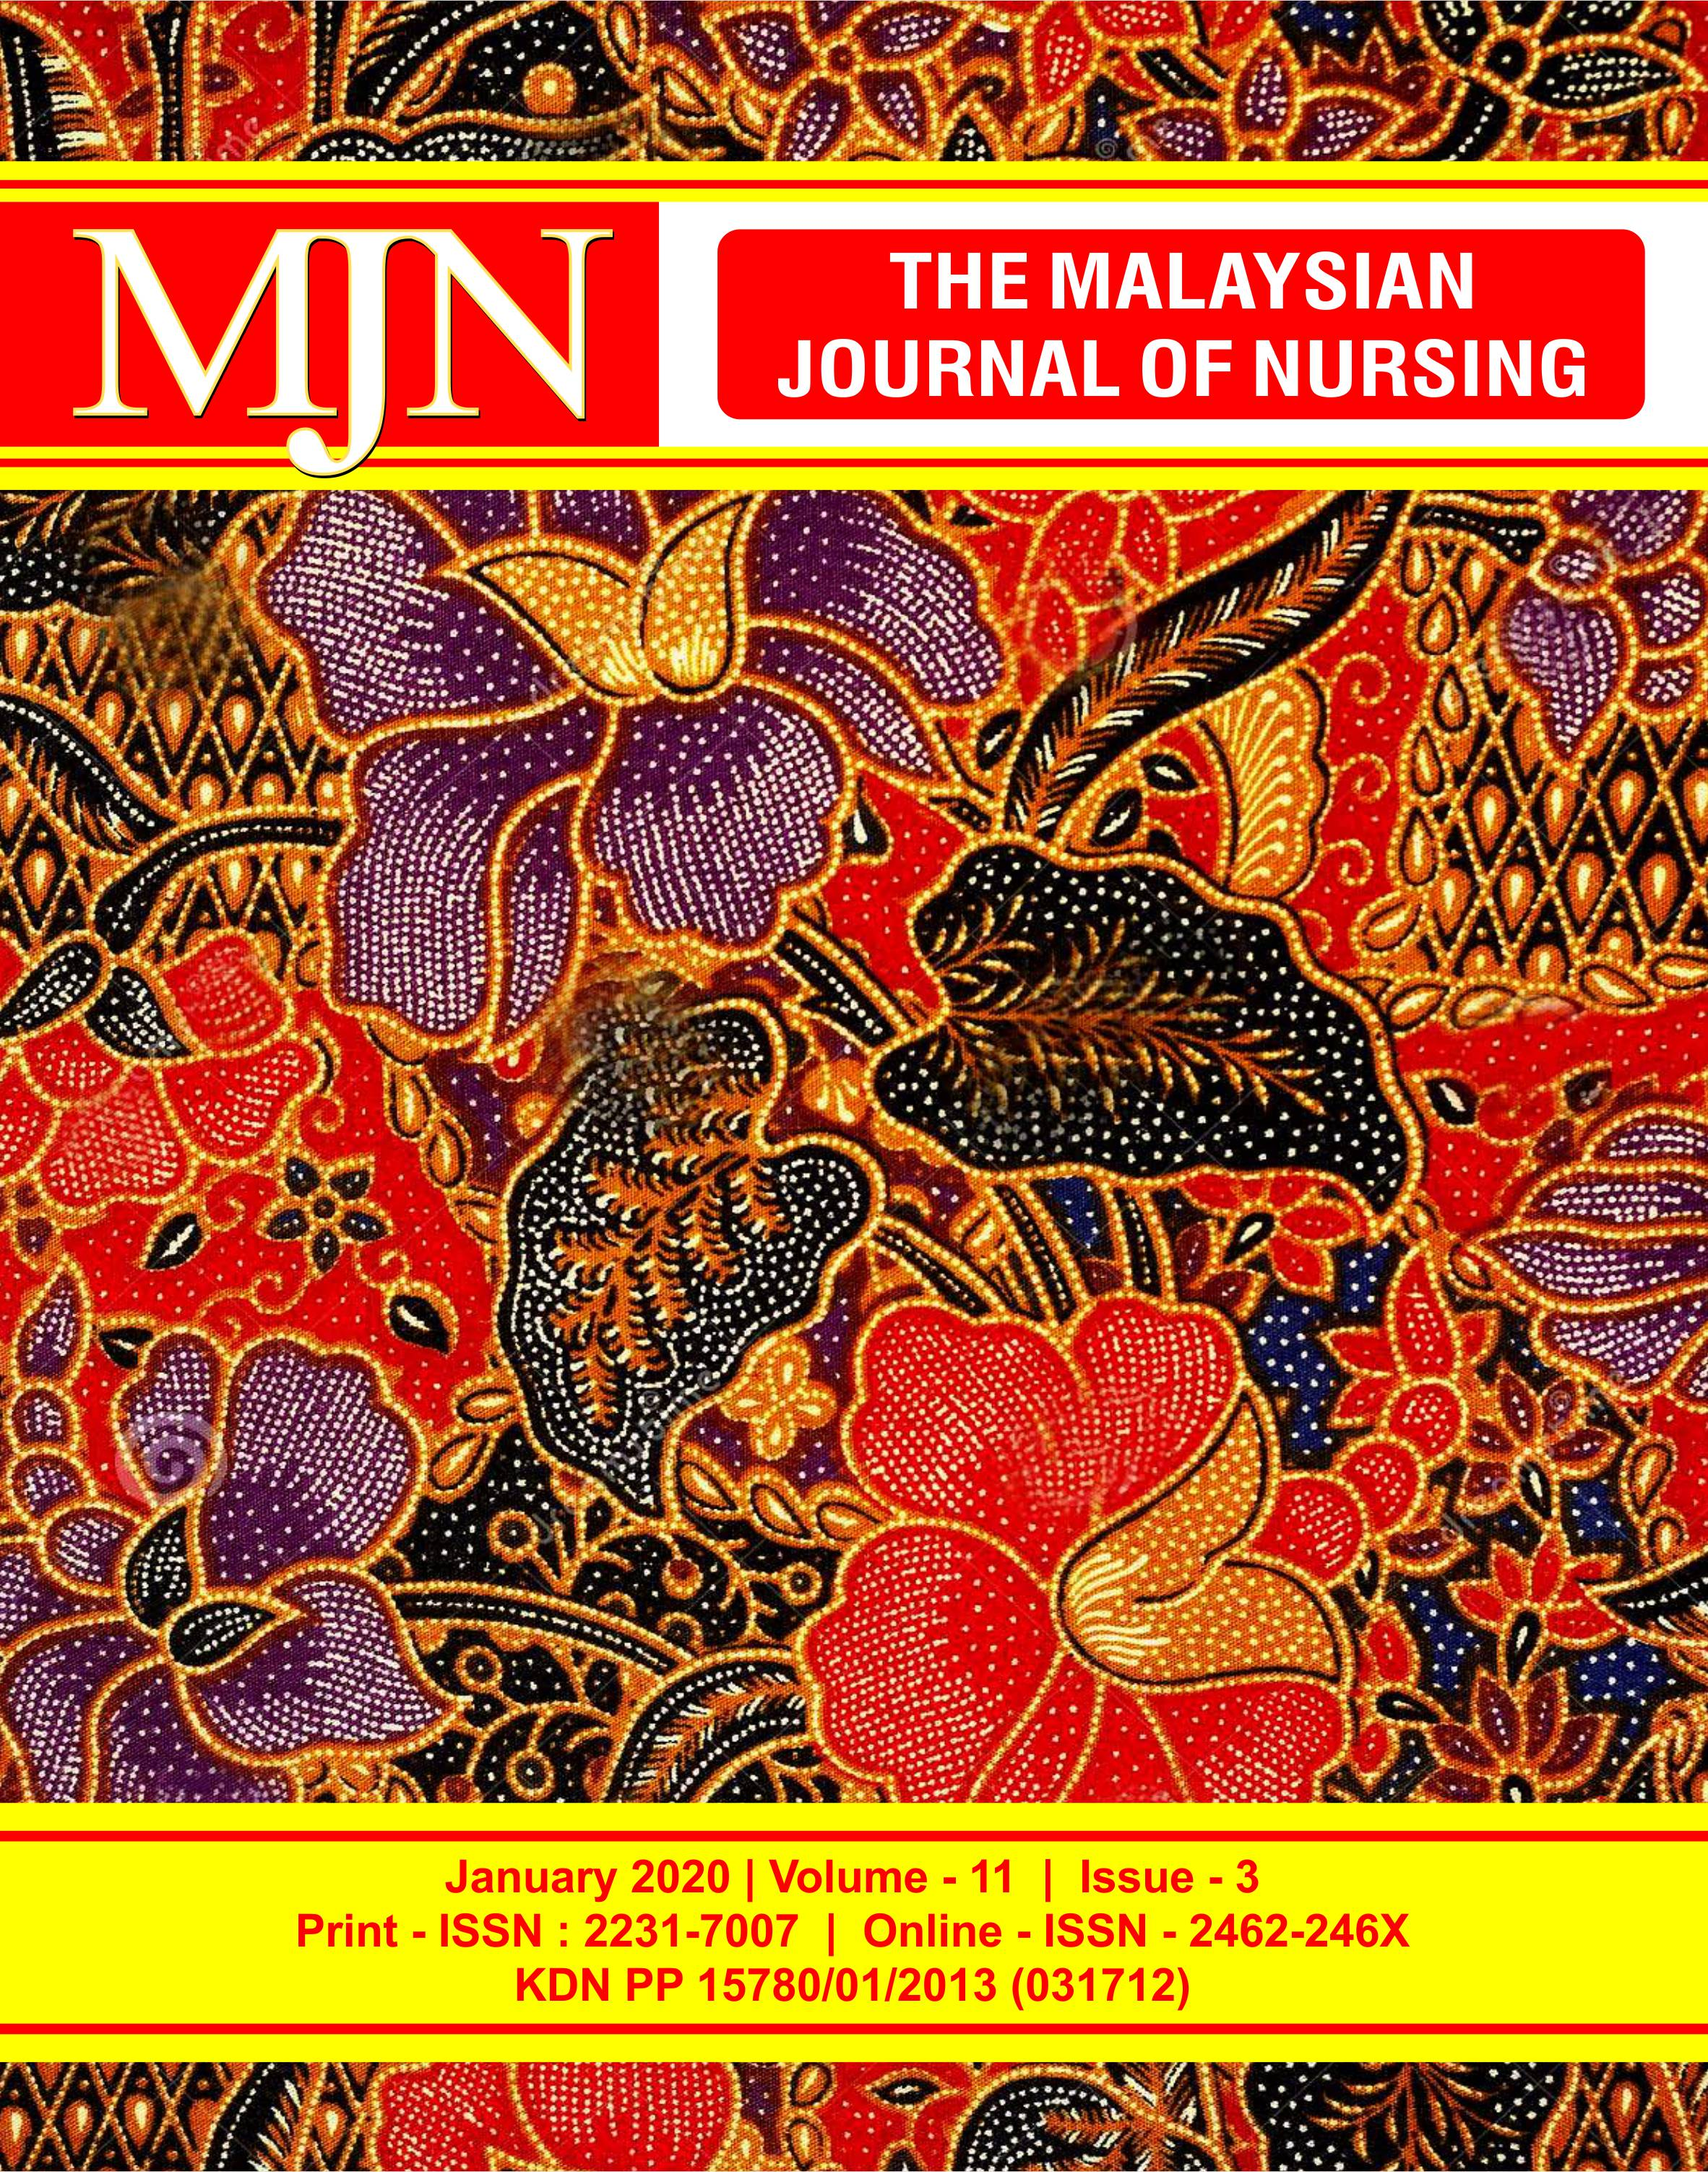 View Vol. 11 No. 3 (2020): The Malaysian Journal of Nursing